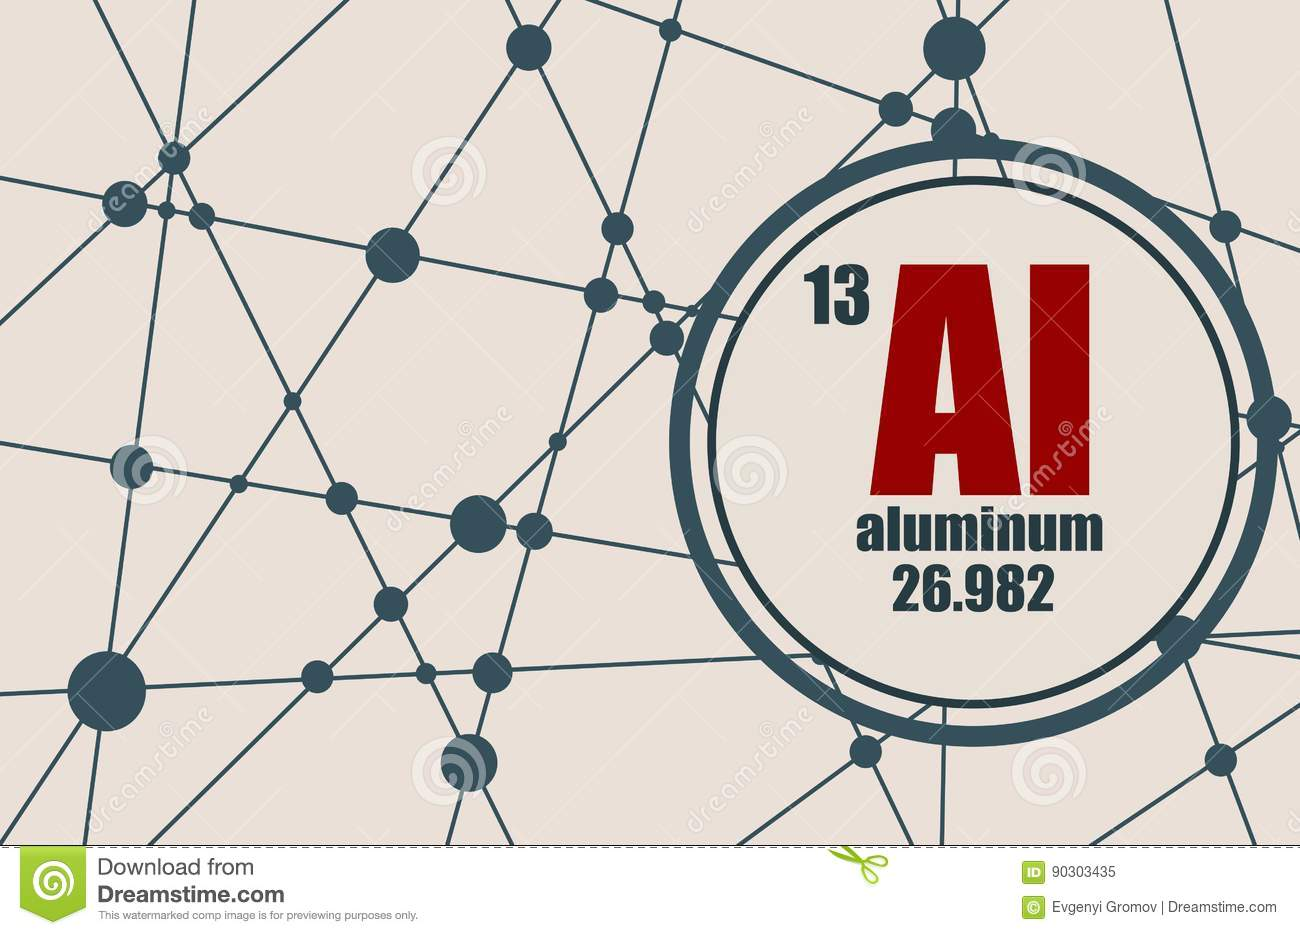 Aluminum chemical element stock vector illustration of mass 90303435 aluminum chemical element sign with atomic number and atomic weight chemical element of periodic table molecule and communication background urtaz Choice Image